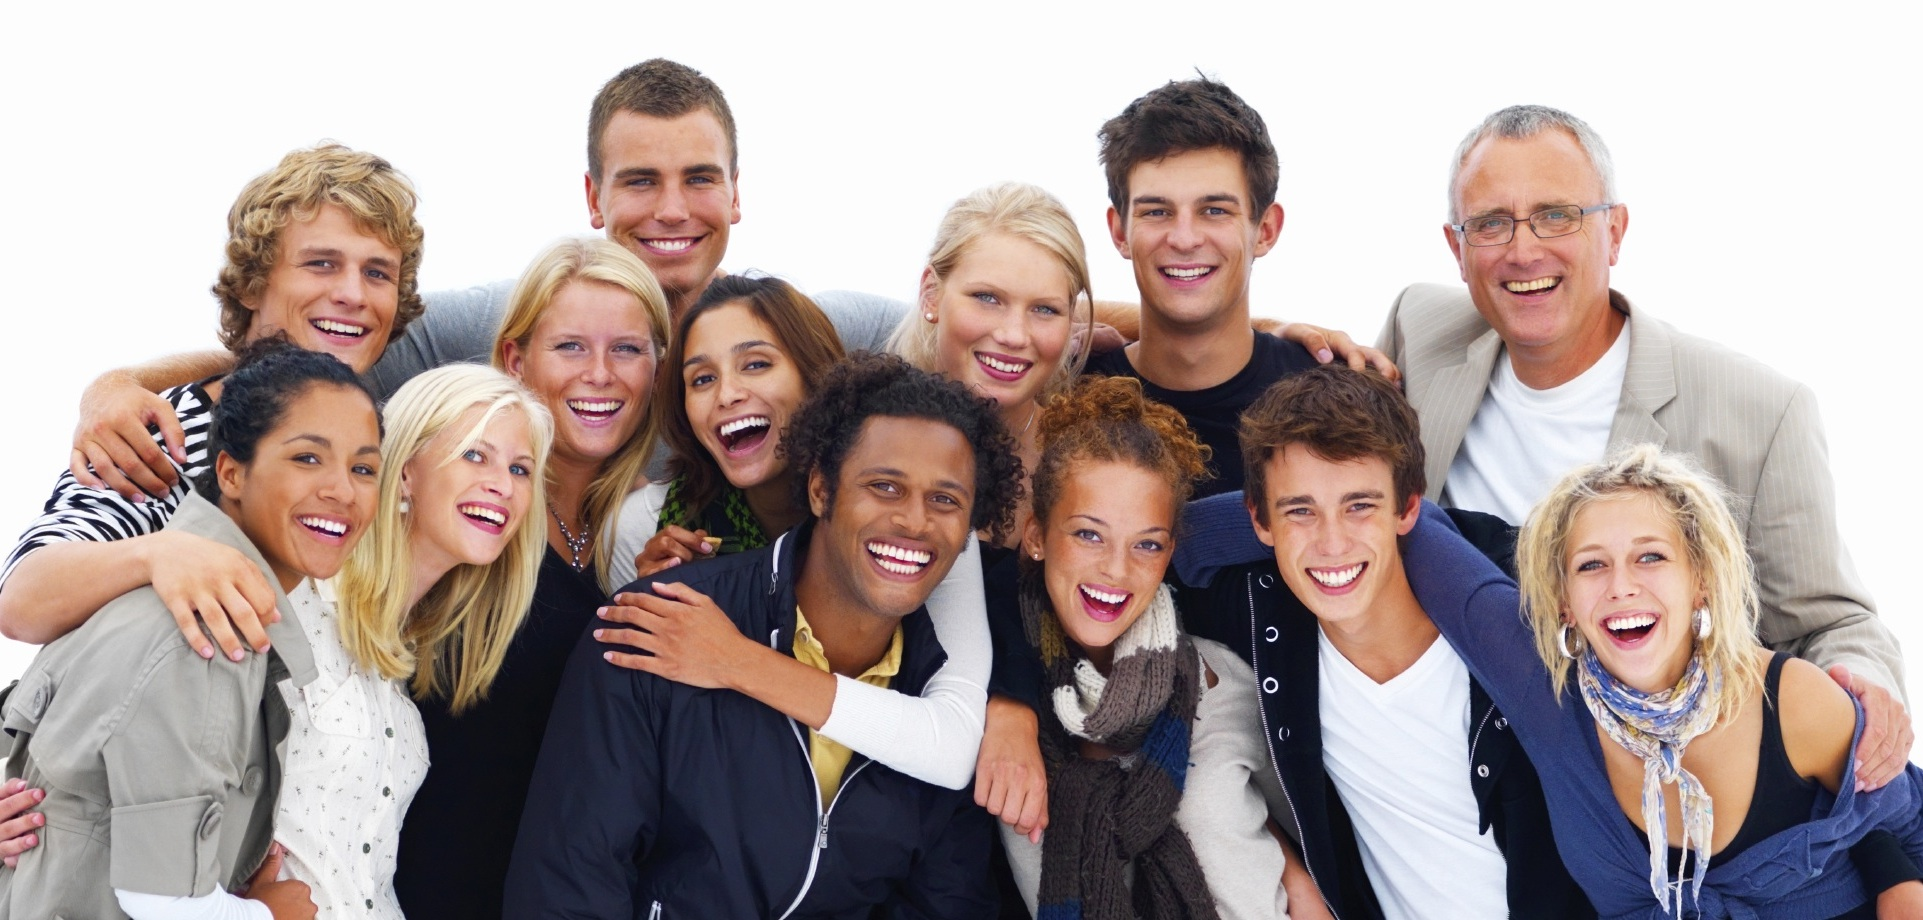 Group of happy friends against white background